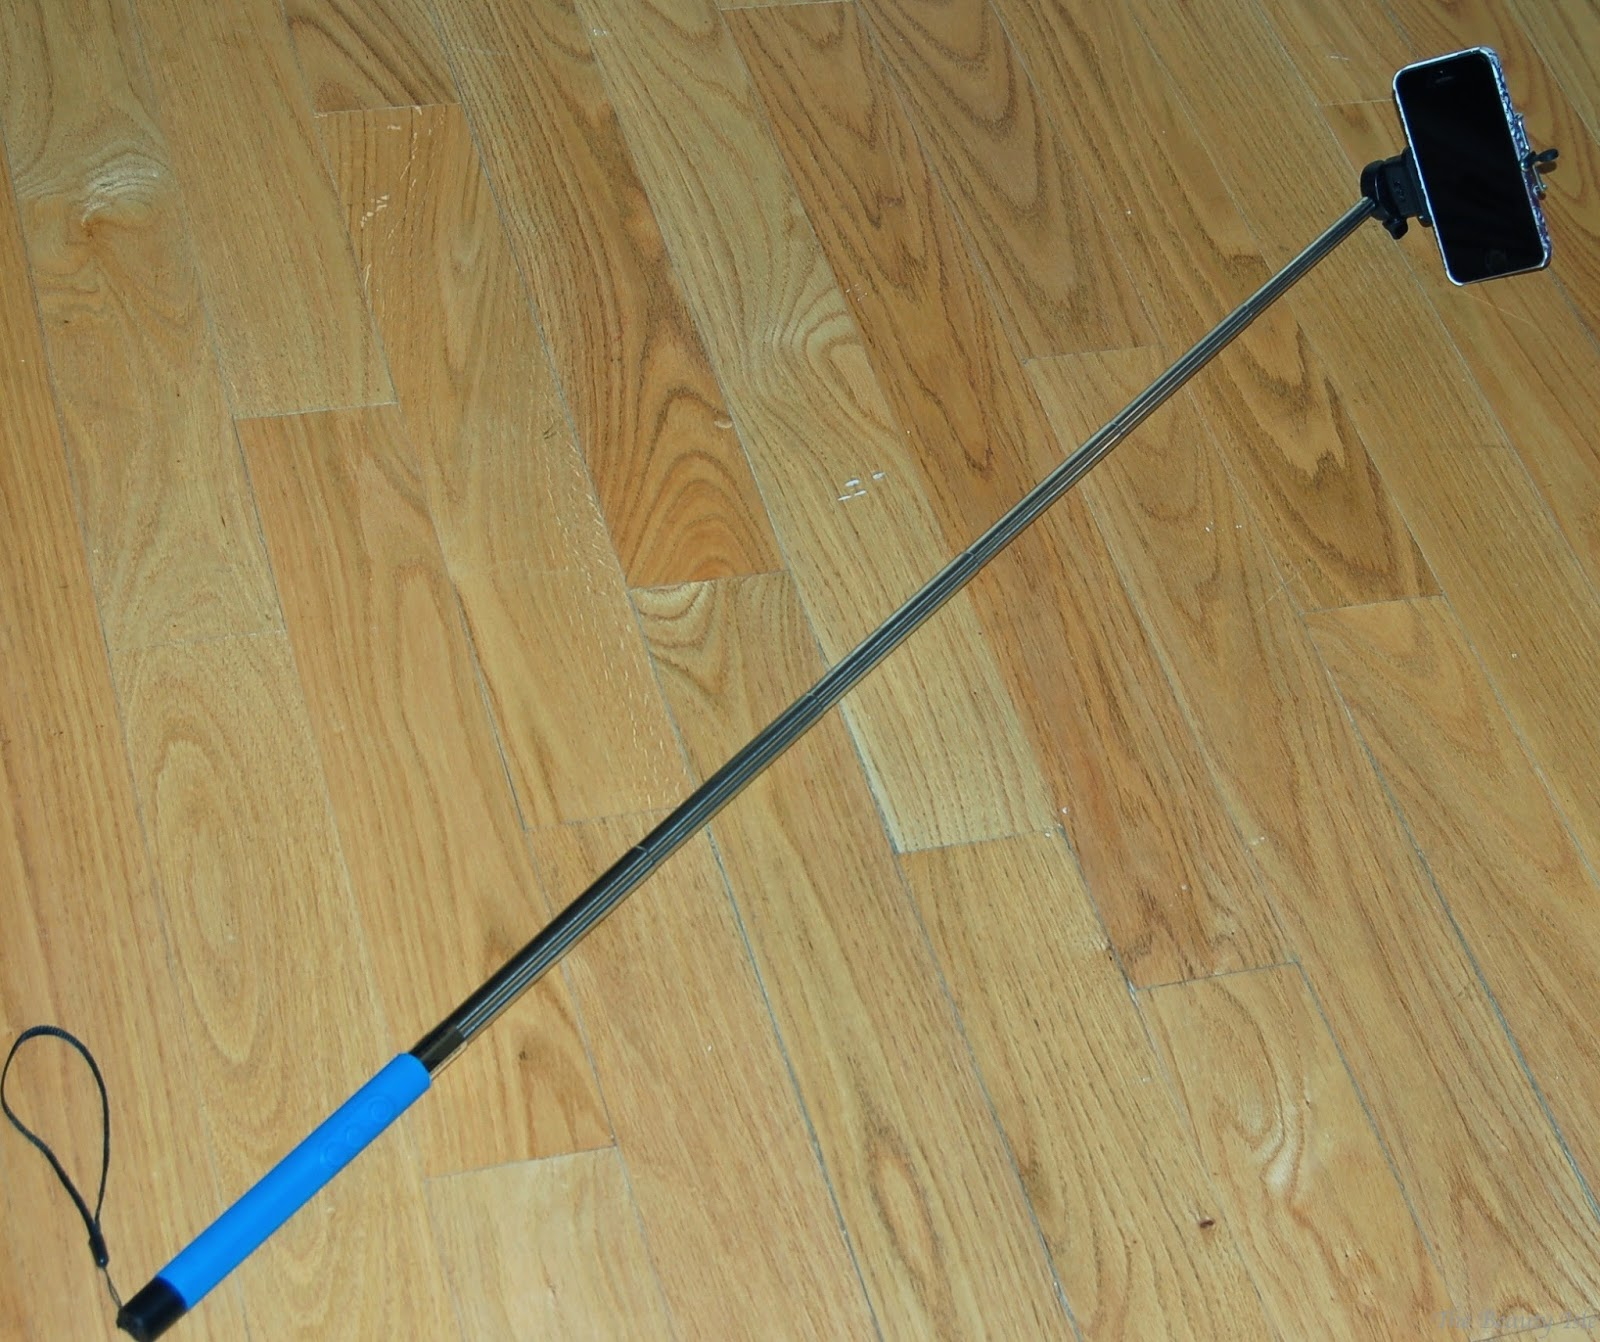 The Pole - 2KAMP Selfie-Stick